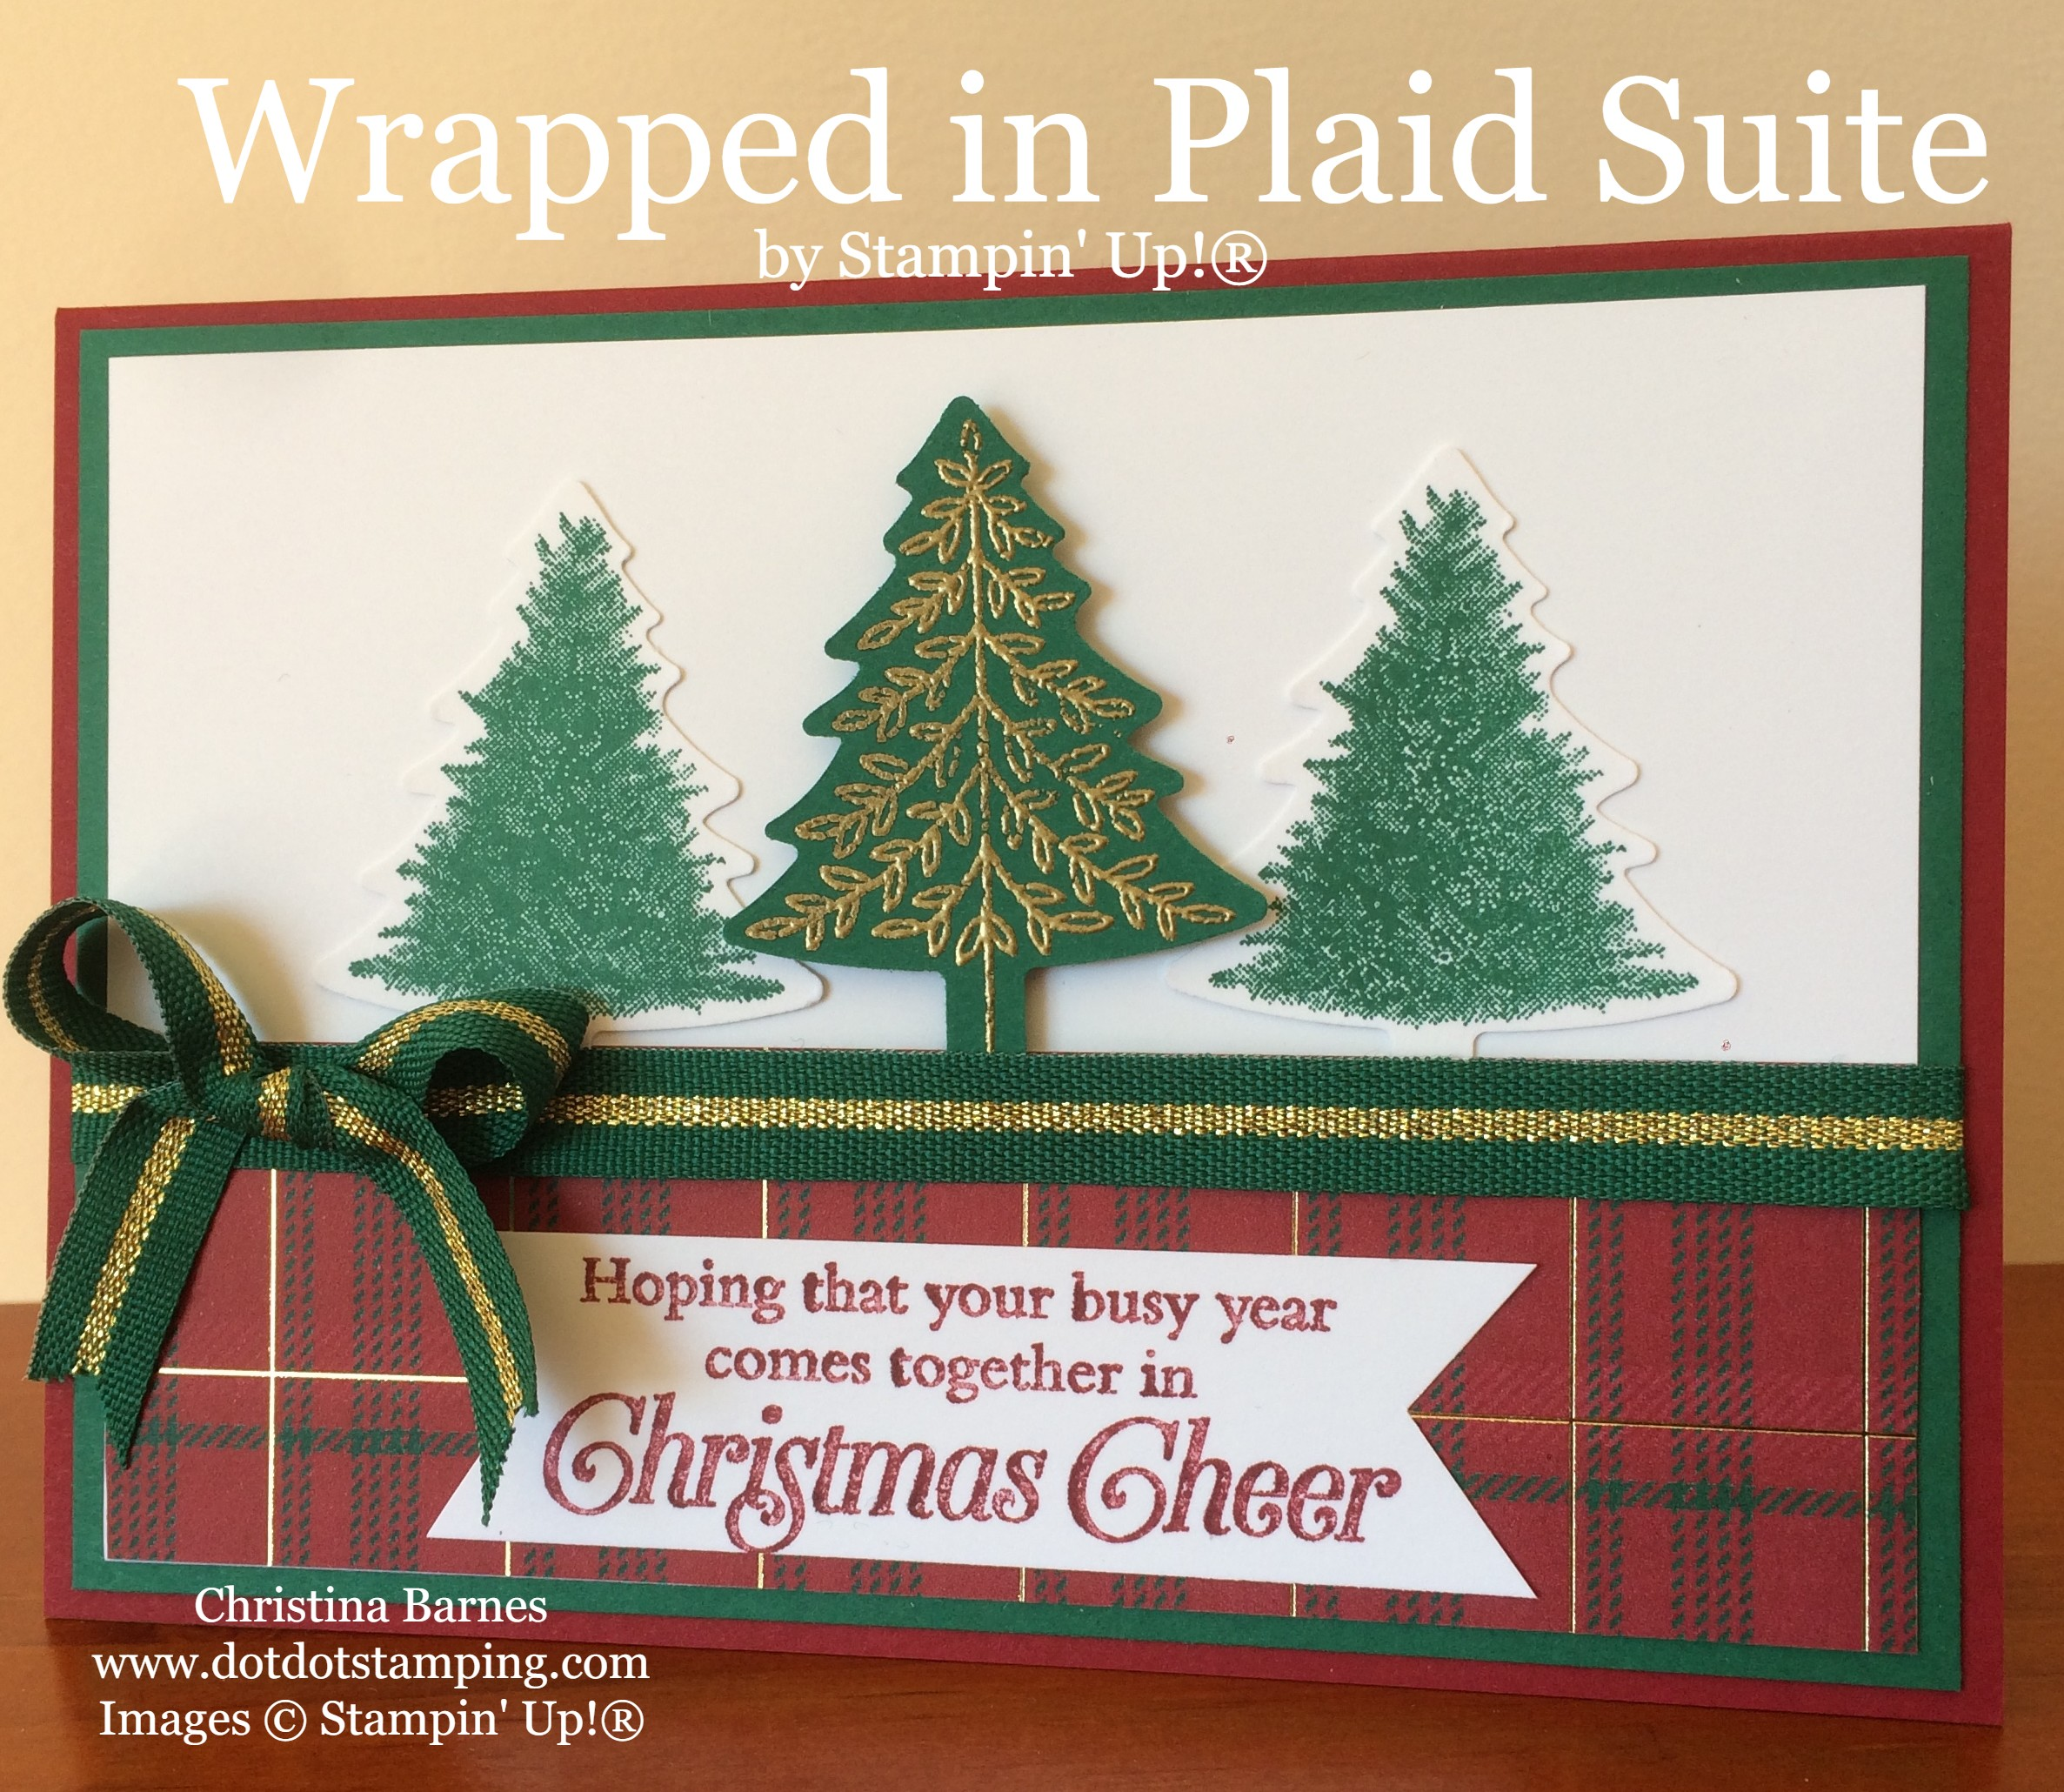 Wrapped in Plaid Suite Pine Tree Punch Perfectly Plaid Stampin Up Embossed Christmas Tree 2019 Holiday Catalogue Christina Barnes Dot Dot Stamping 1